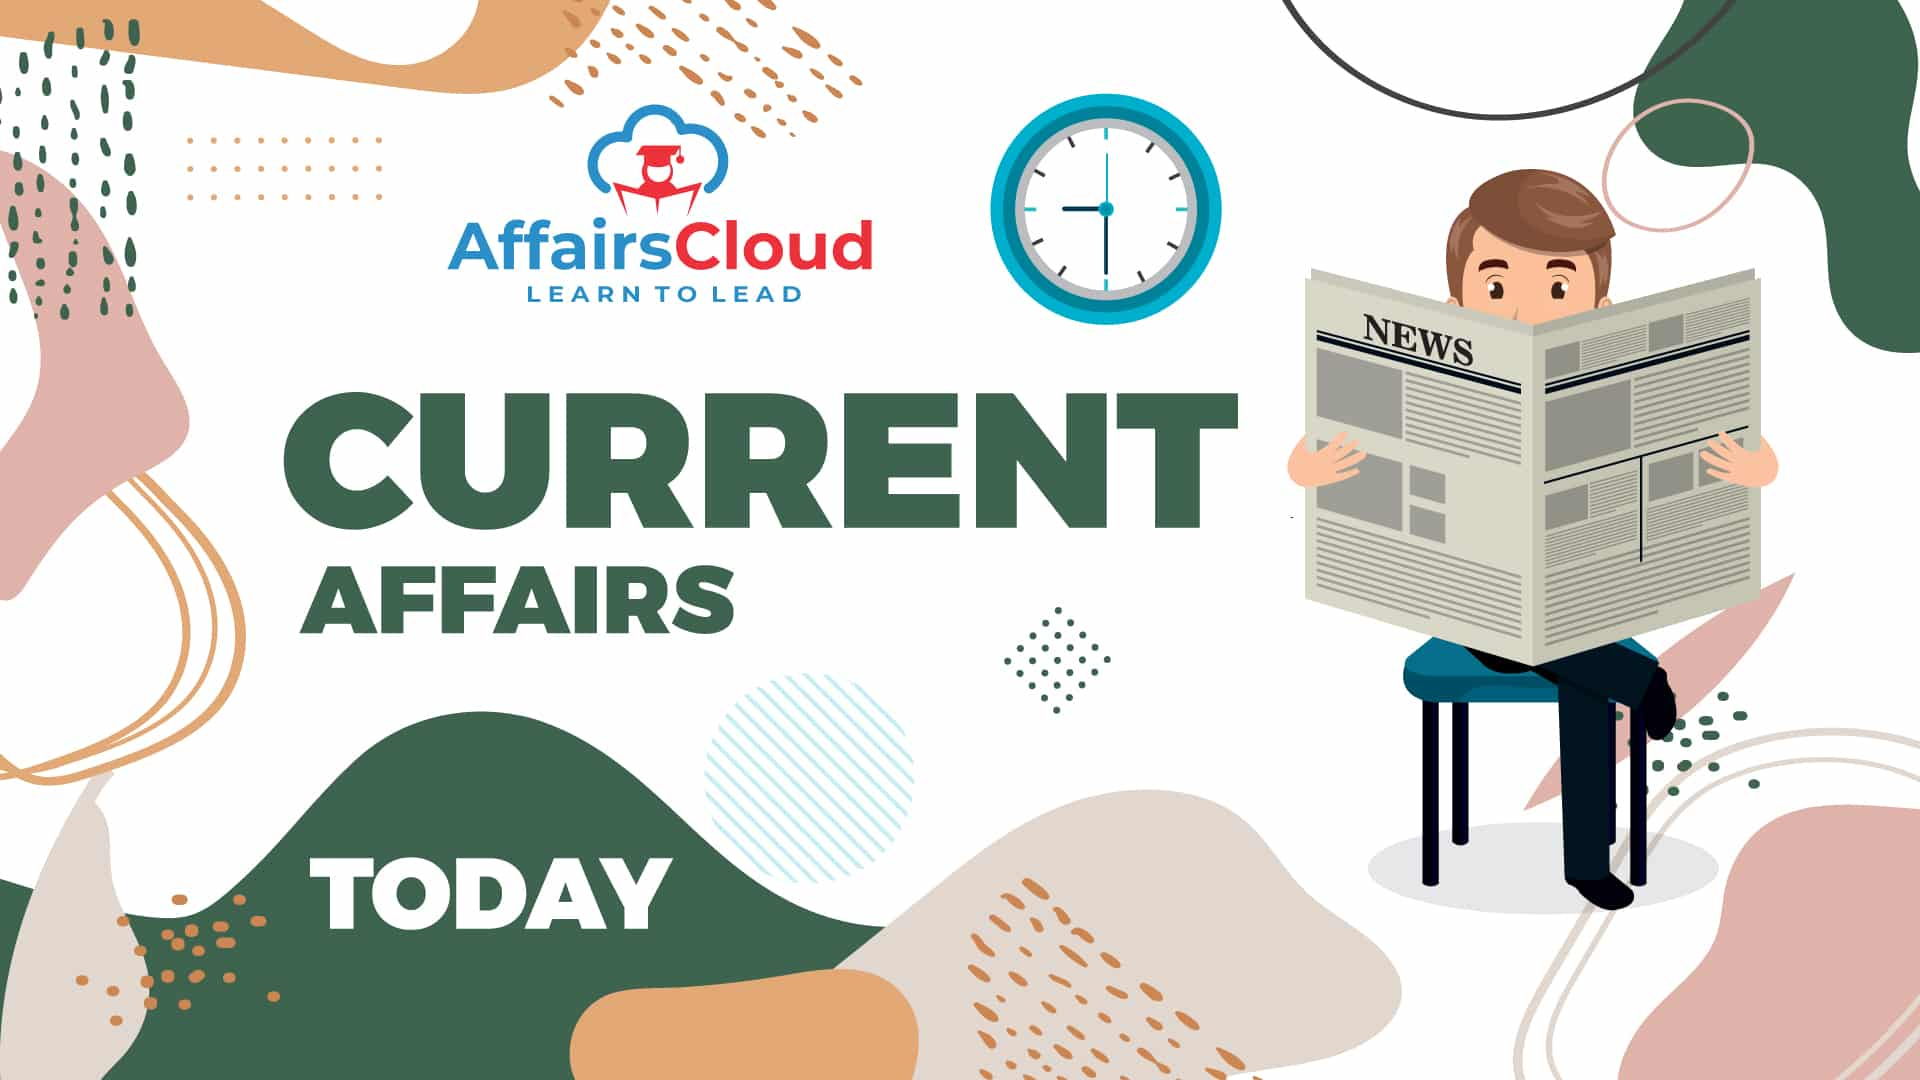 Current Affairs Today Landing Page Image